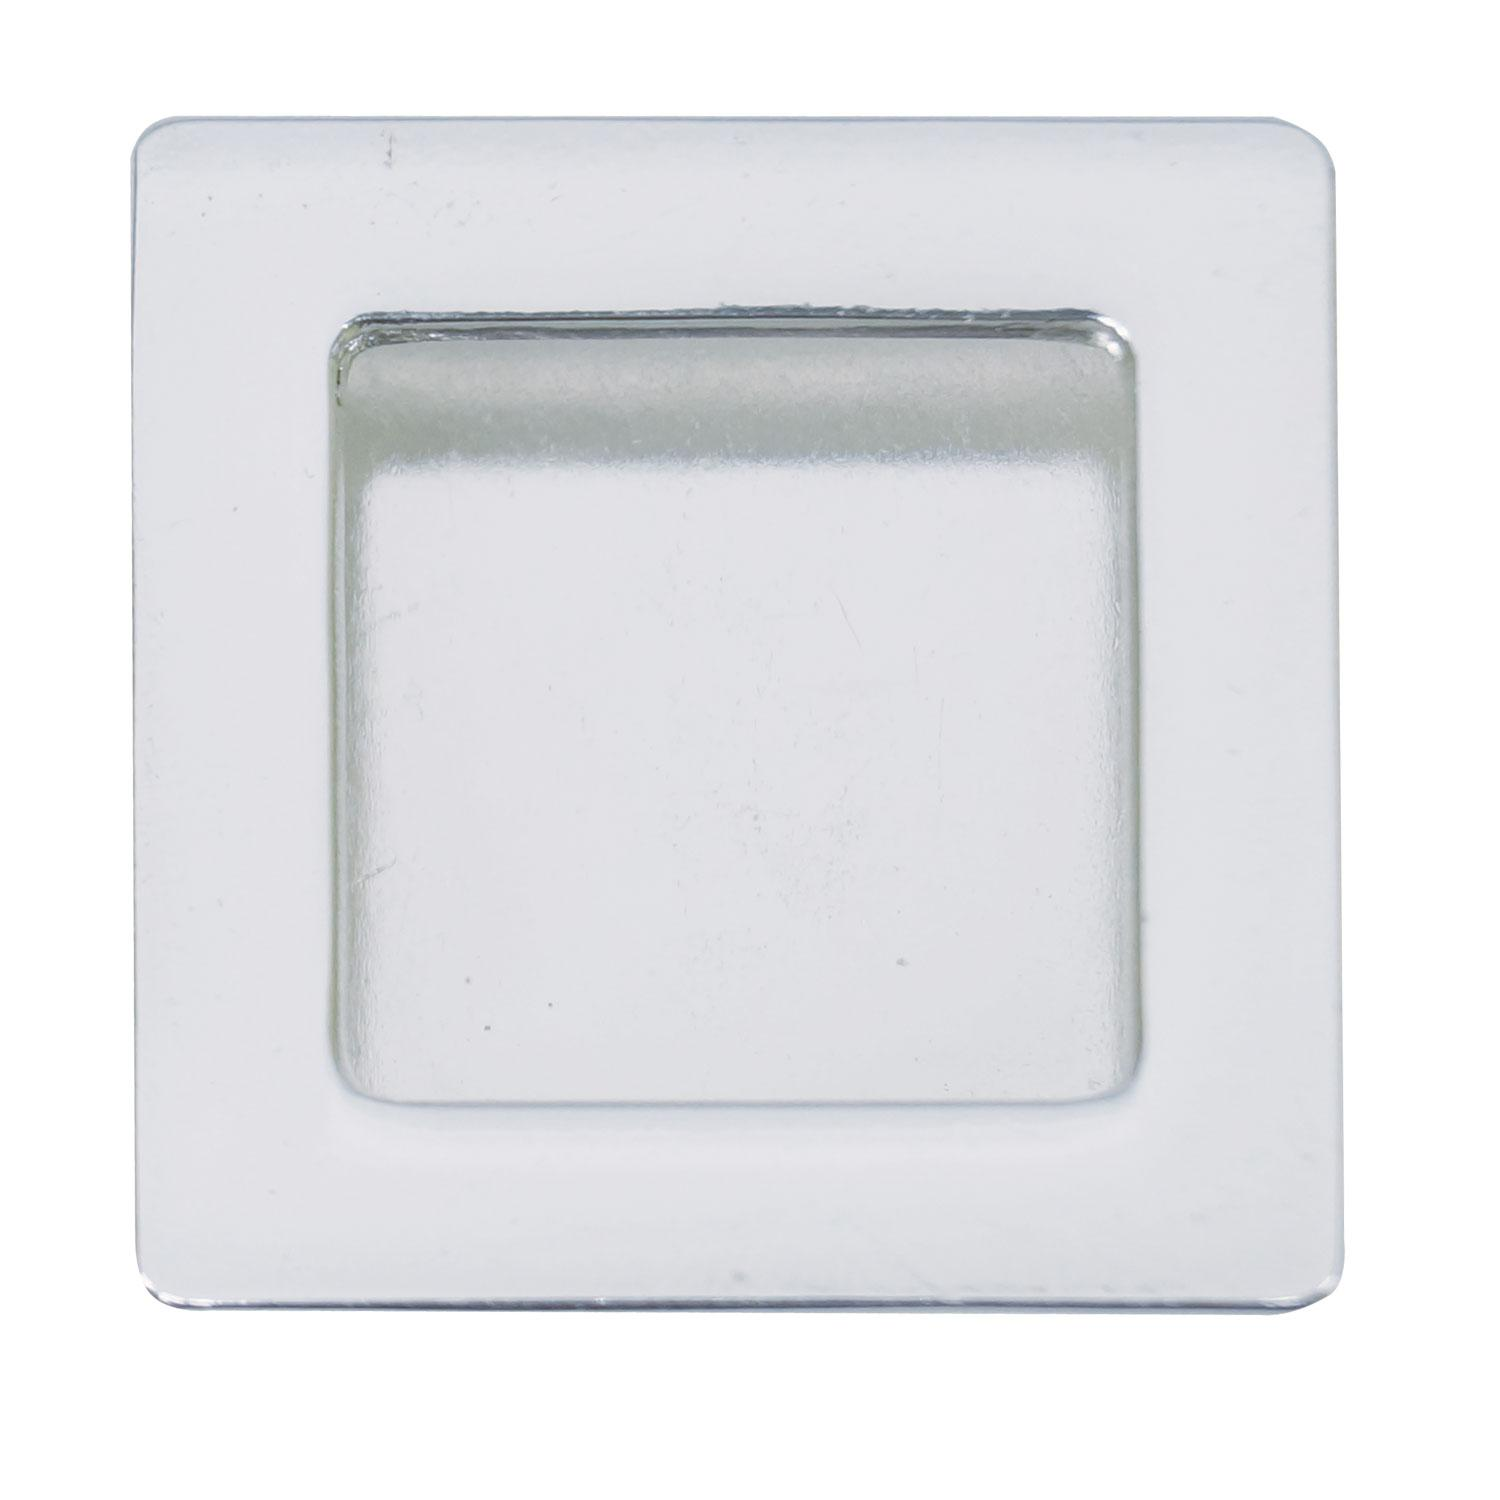 Silver Plated Square Gallery Frame Pendant